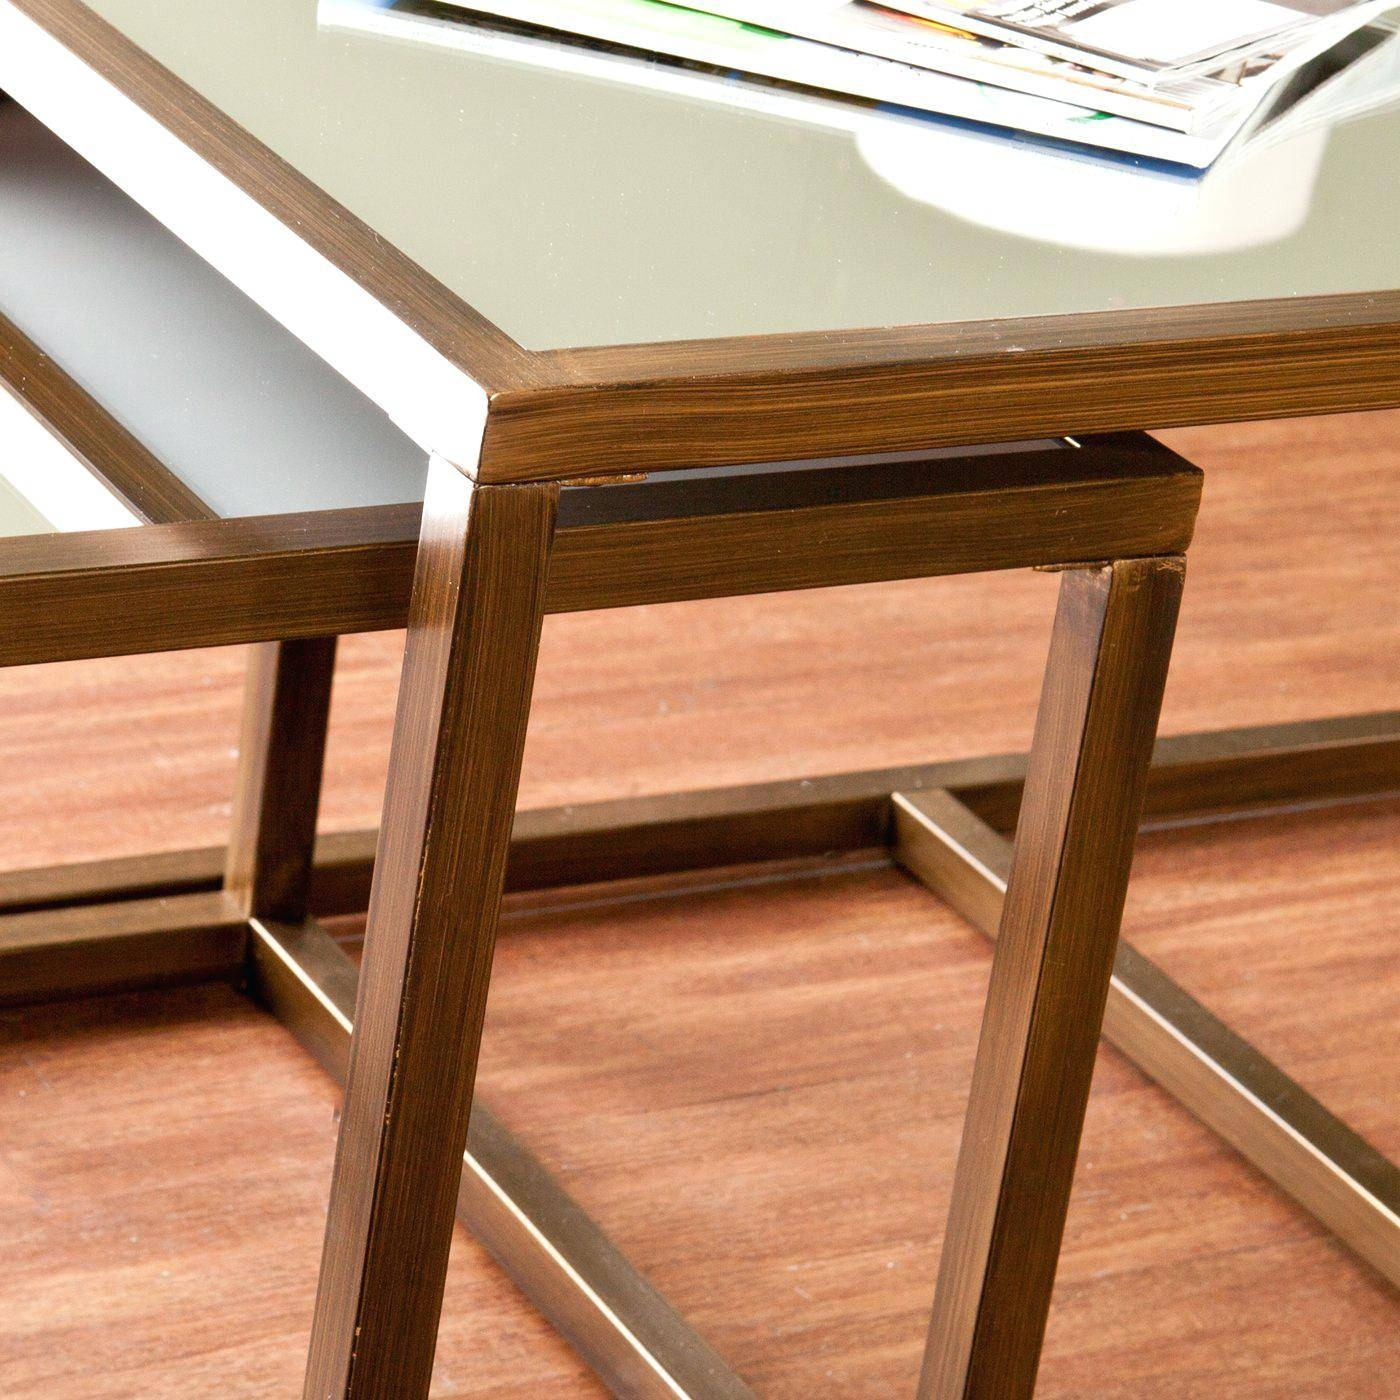 Coffee Table: Coffee Table With Nesting Stool. Coffee Table With pertaining to Coffee Tables With Nesting Stools (Image 14 of 30)